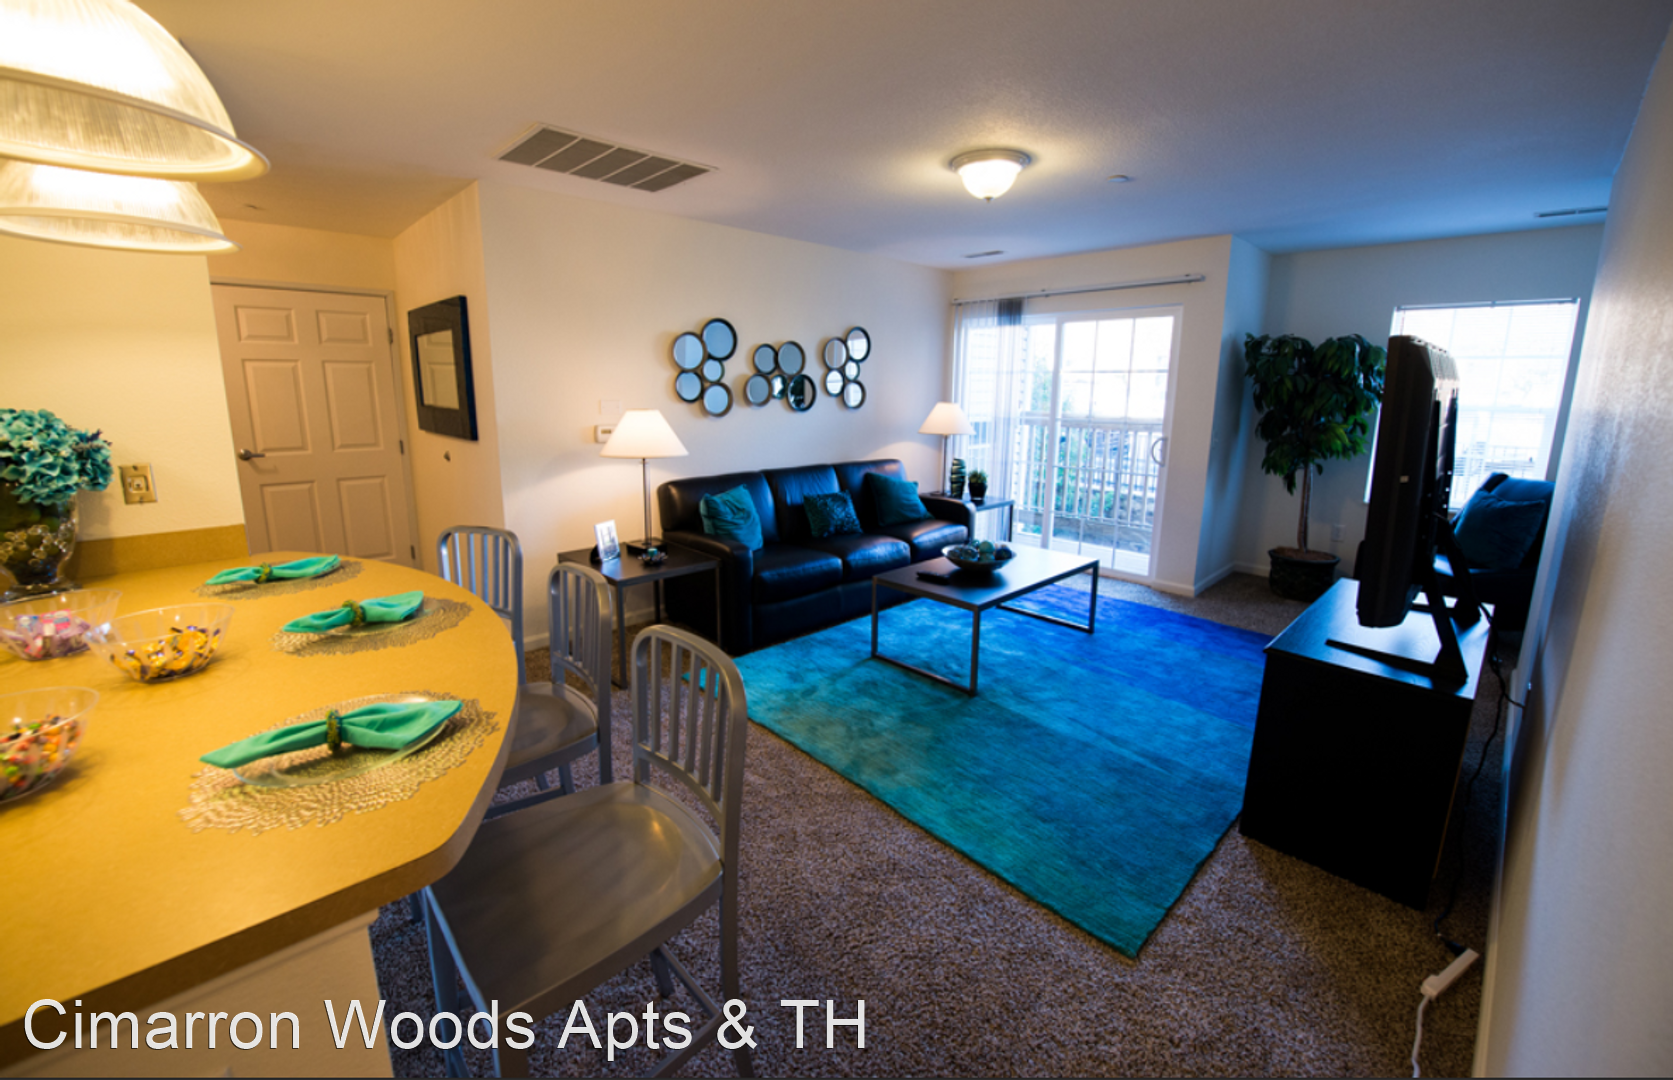 Apartments Near Wright State Cimarron Woods Townhomes and for Wright State University Students in Dayton, OH